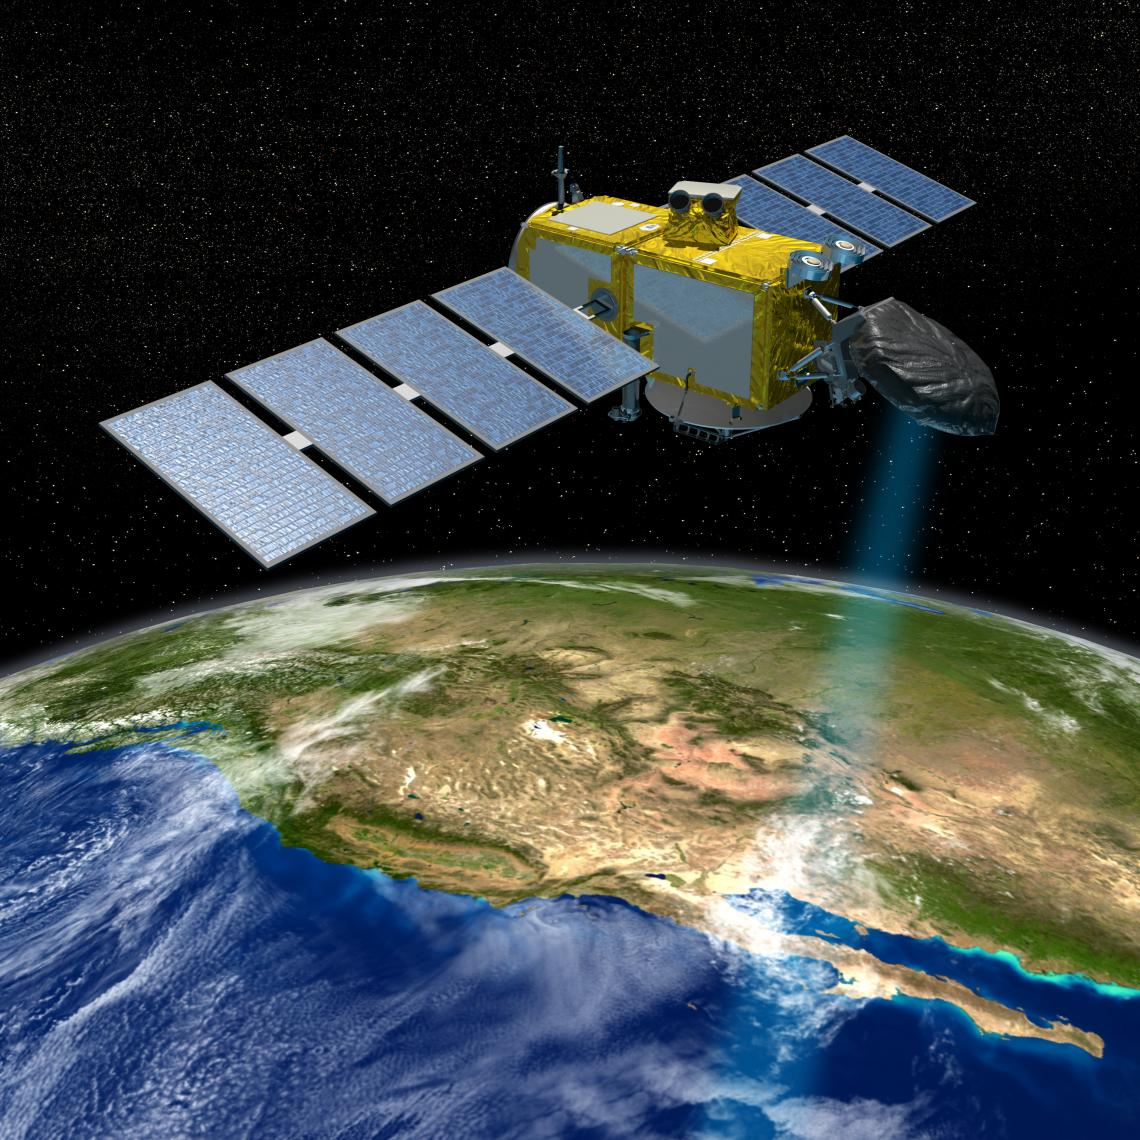 The Jason series of U.S./European satellites can measure the height of the ocean surface.